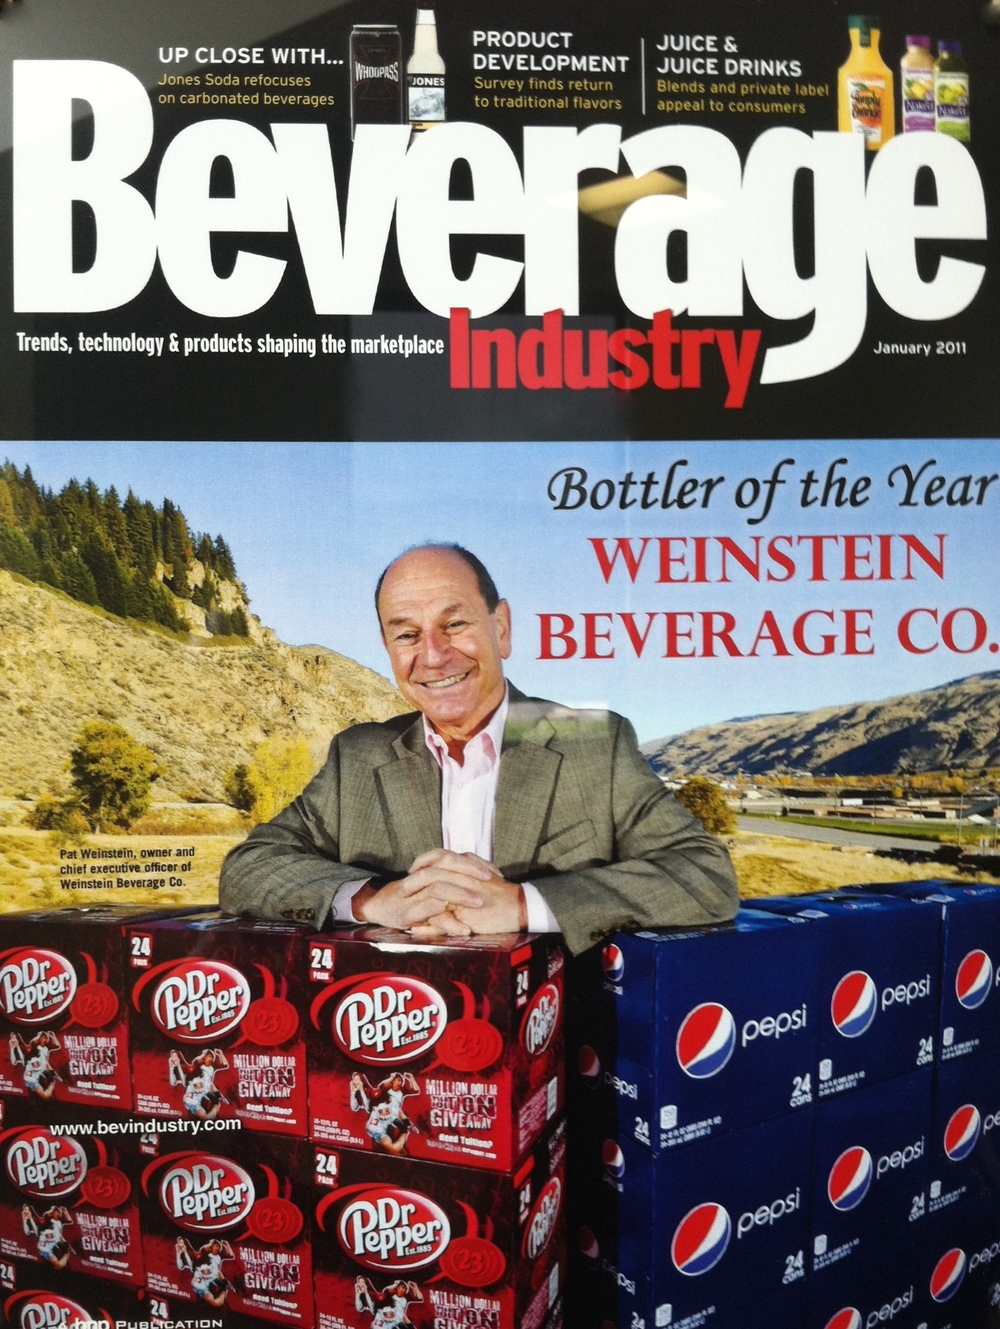 Pat Weinstein on the cover of Beverage Industry Magazine - winner of the 'Bottler of the Year' for 2010.